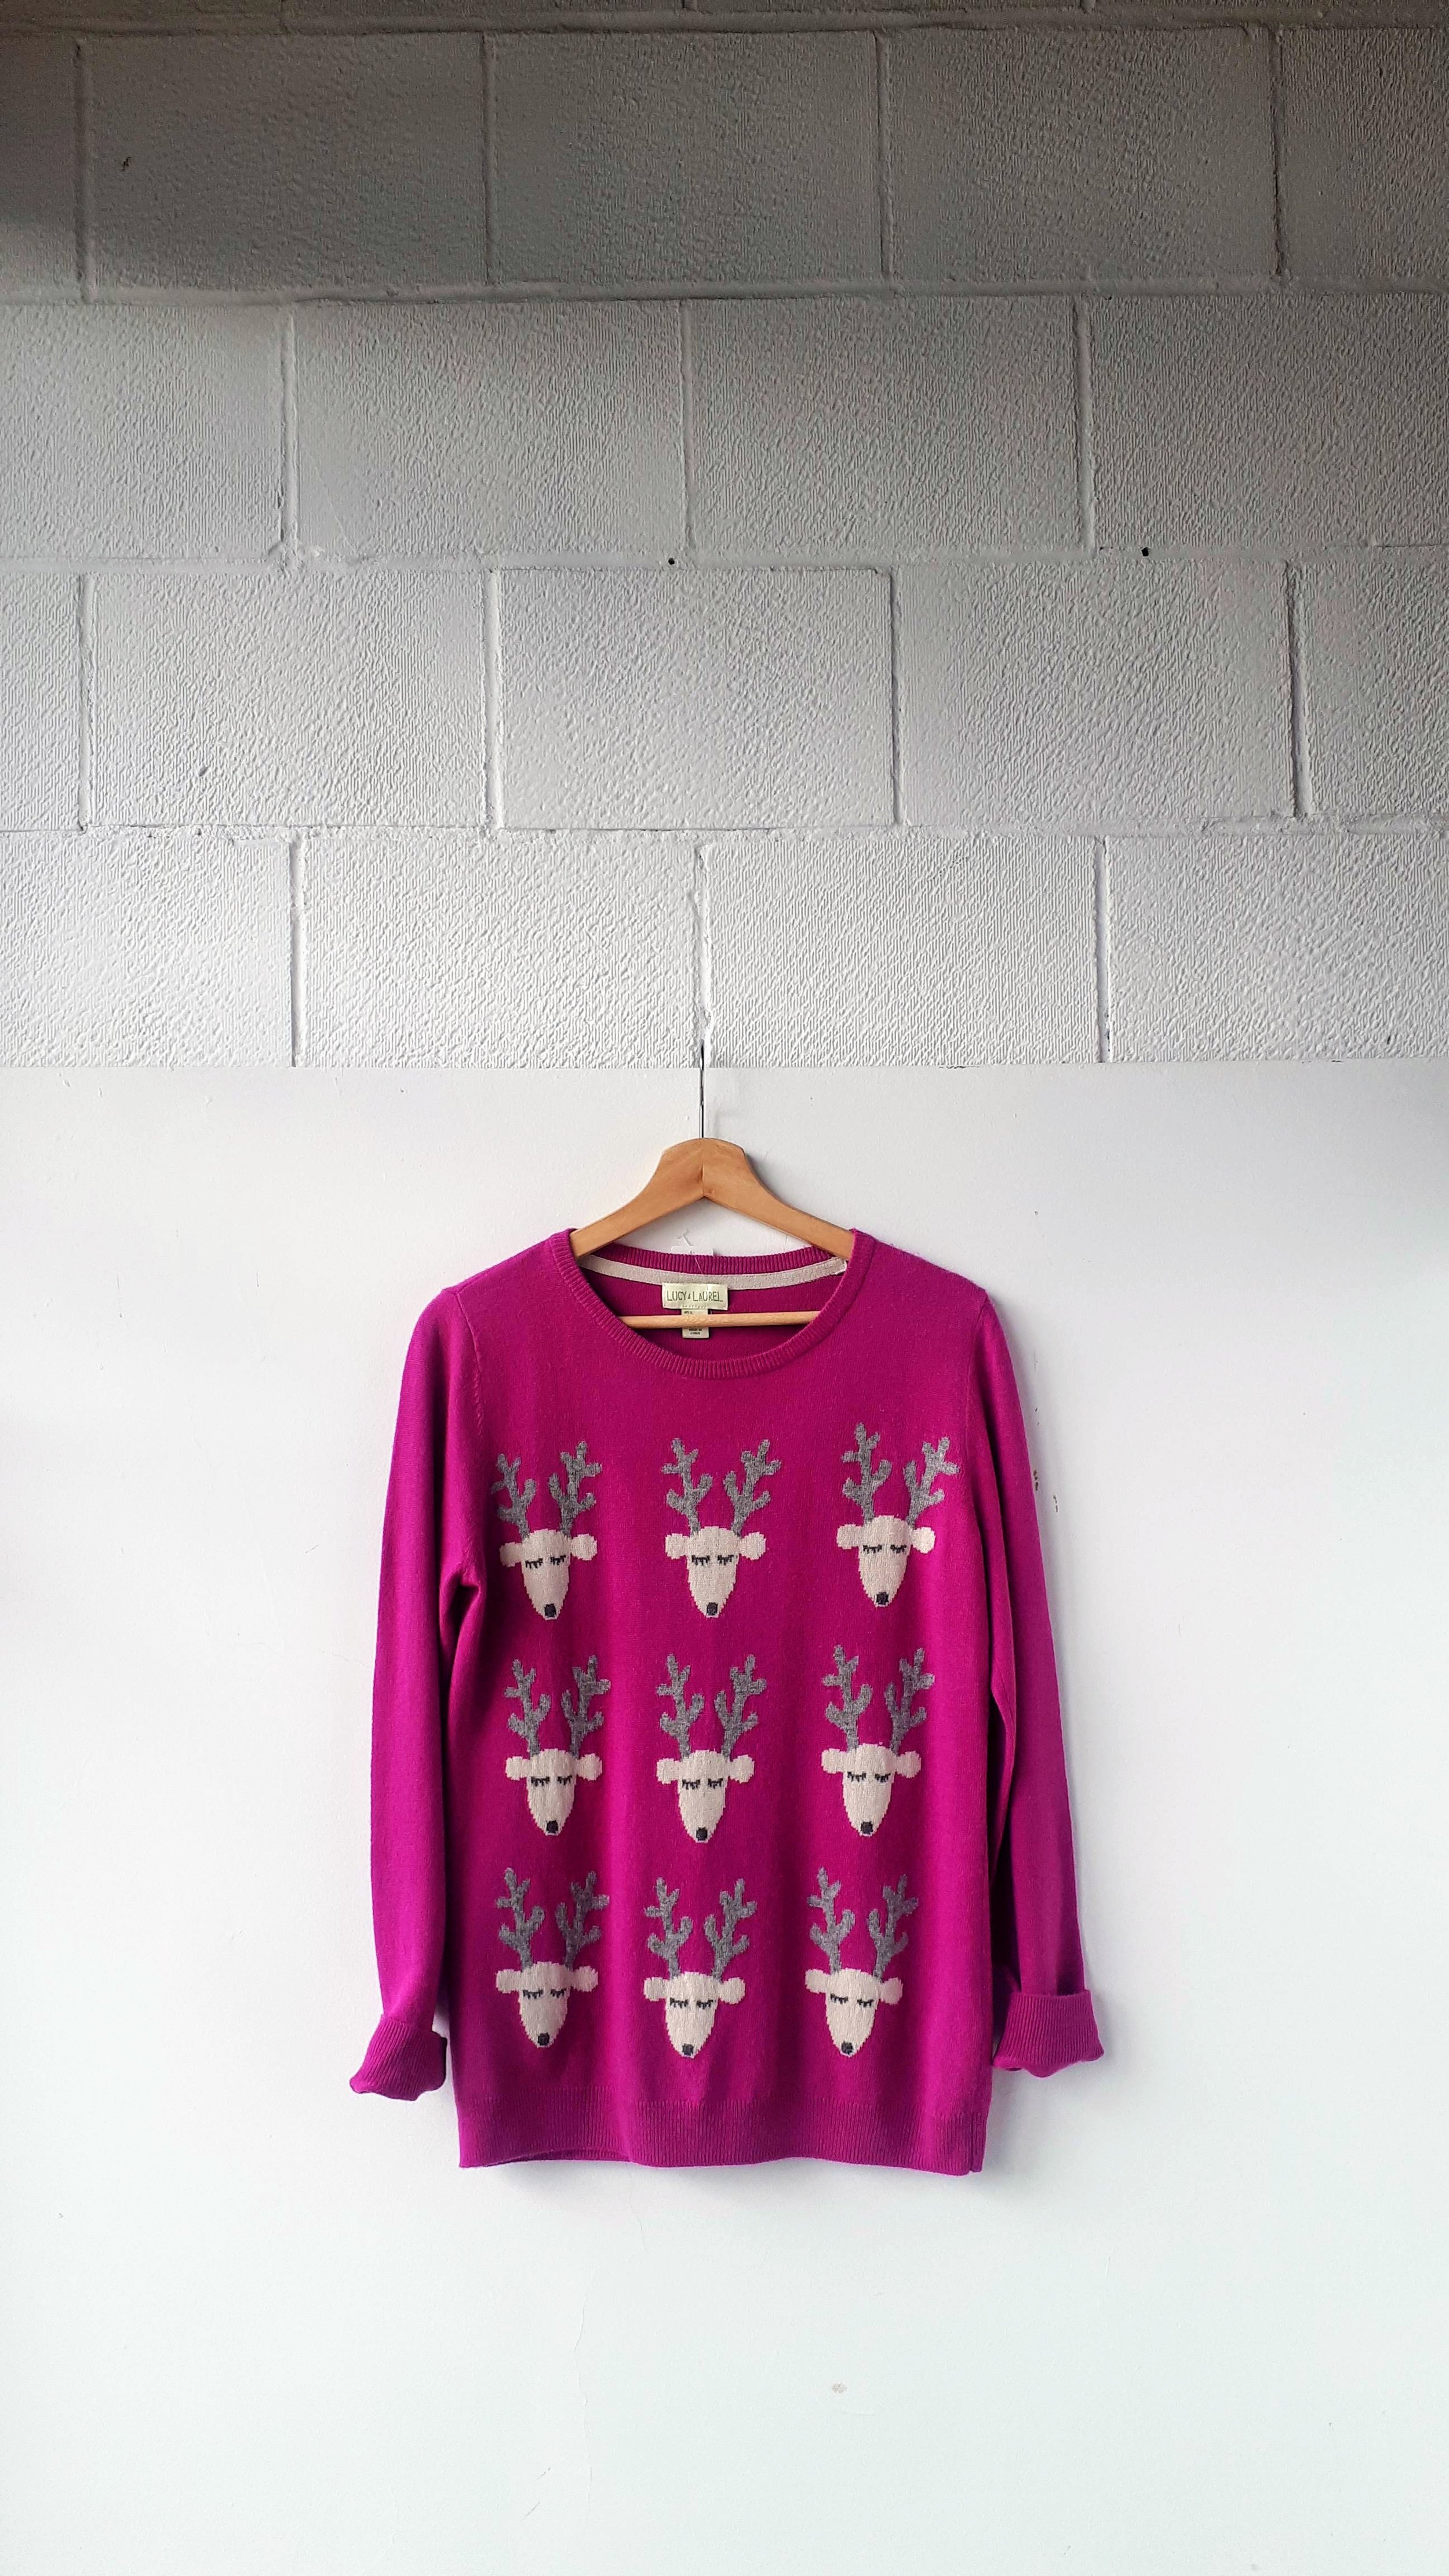 Lucy and Laurel sweater; Size L, $30